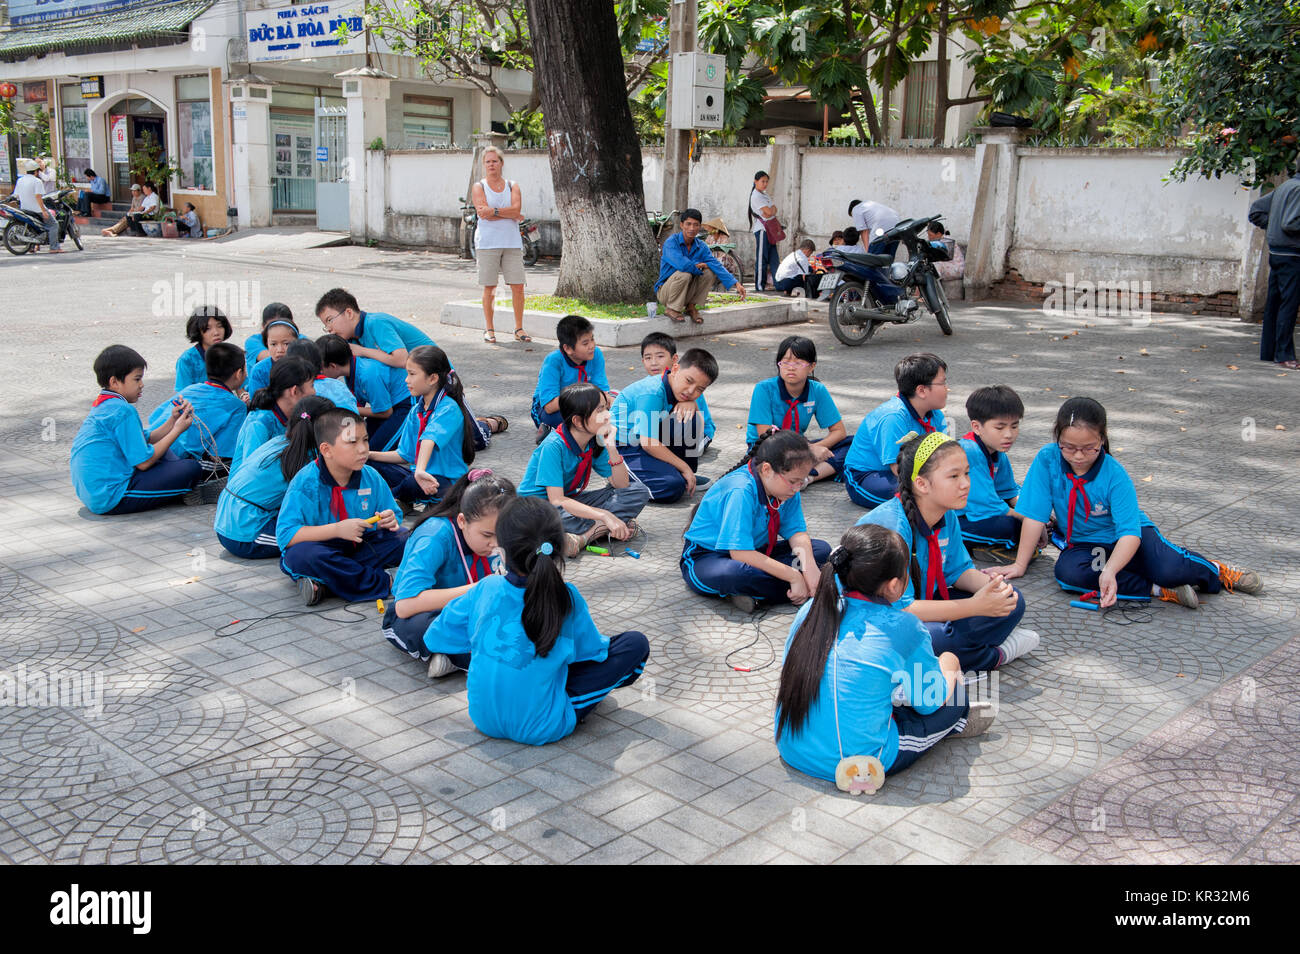 School children resting on a street in Ho Chi Minh City. - Stock Image